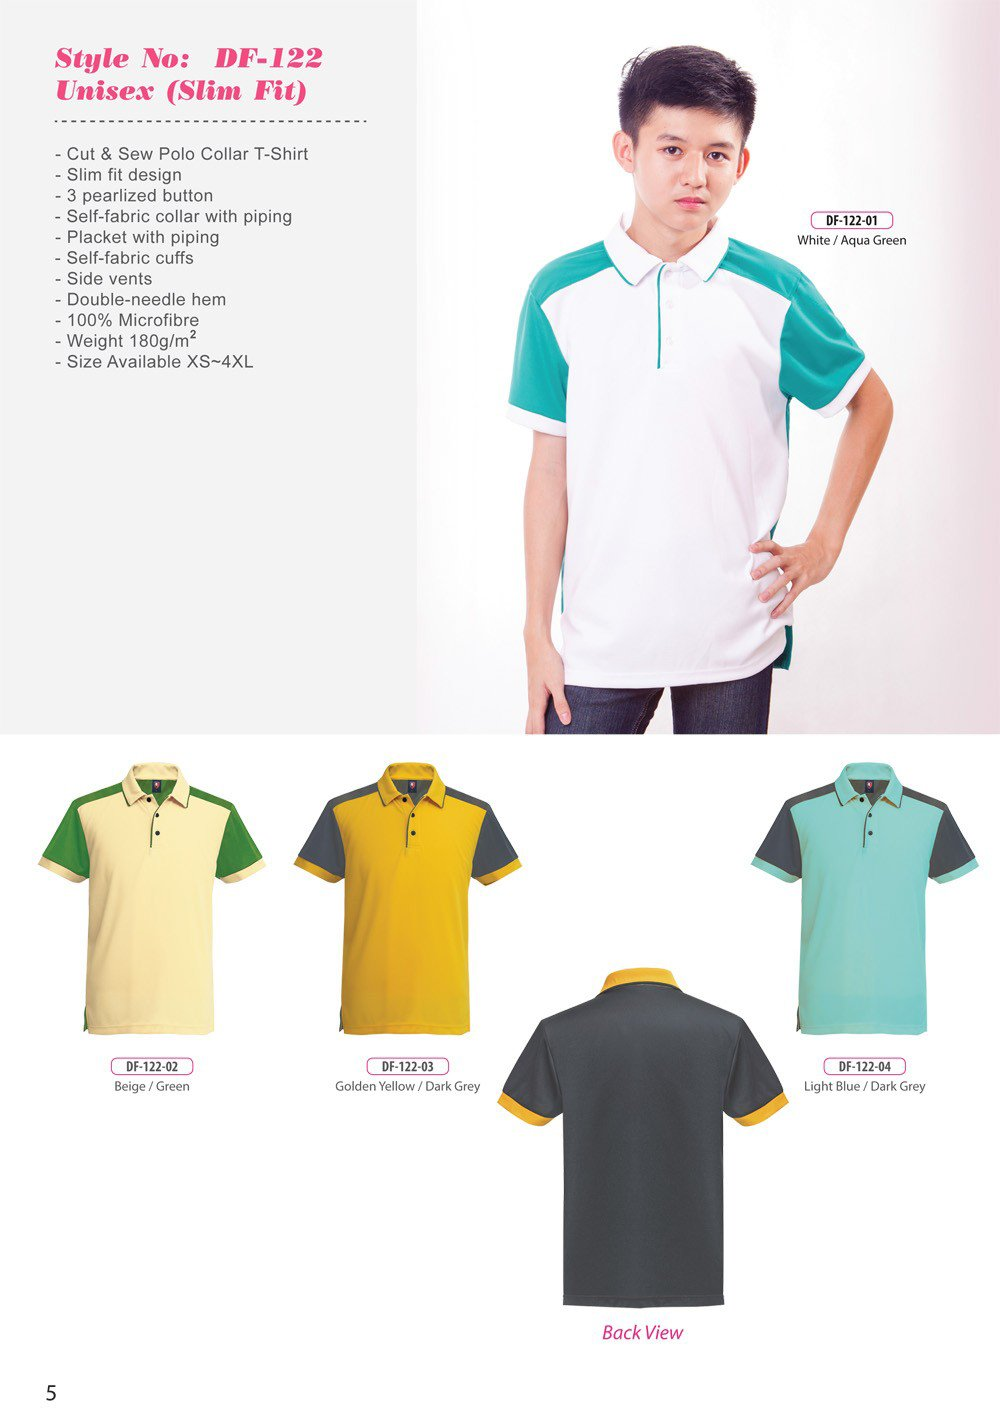 ID-DF 122 Unisex (Slim Fit) + Colors